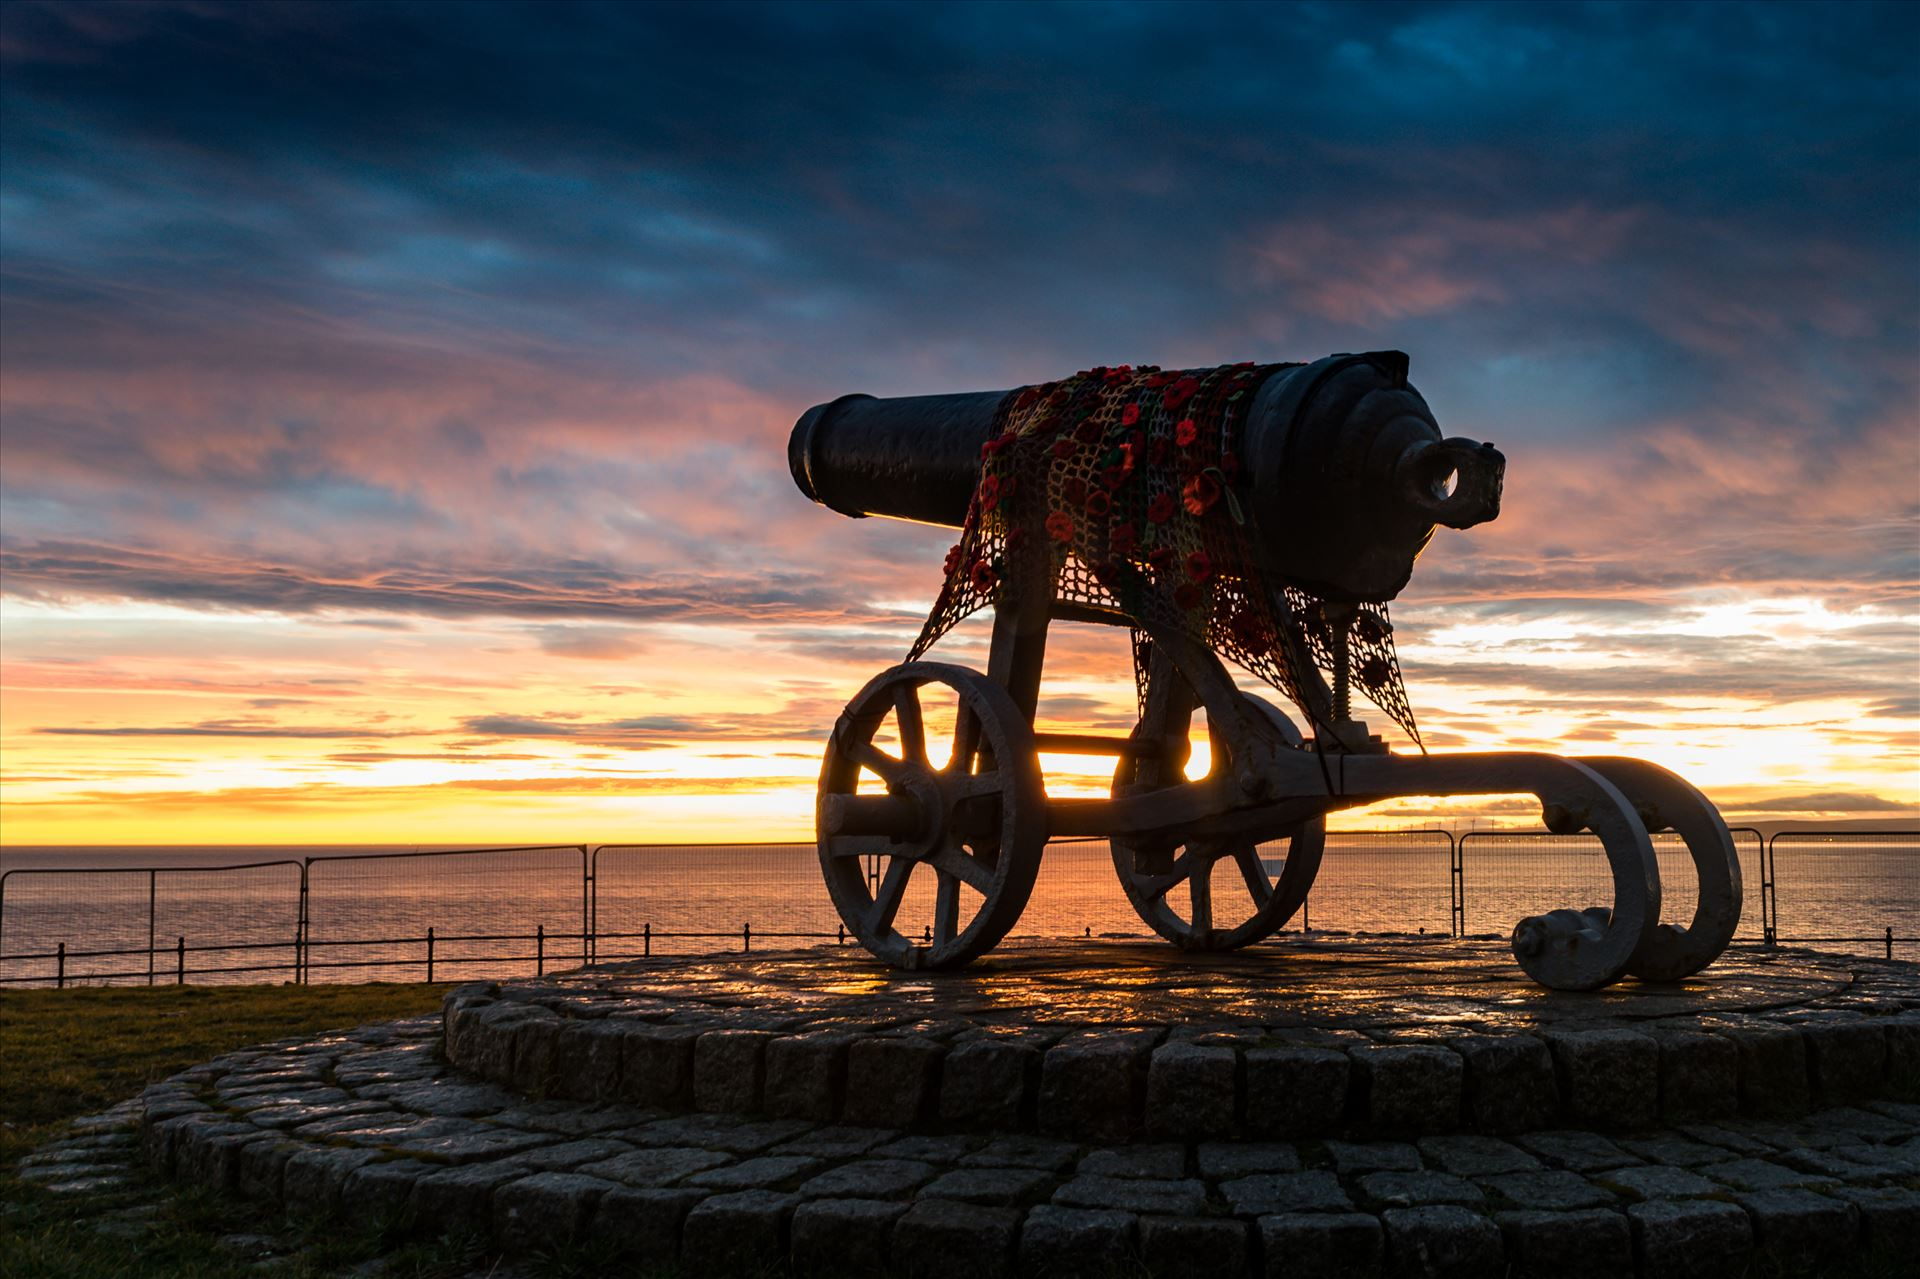 Cannon Sunrise - The Cannon at Hartlepool Headland at sunrise by AJ Stoves Photography